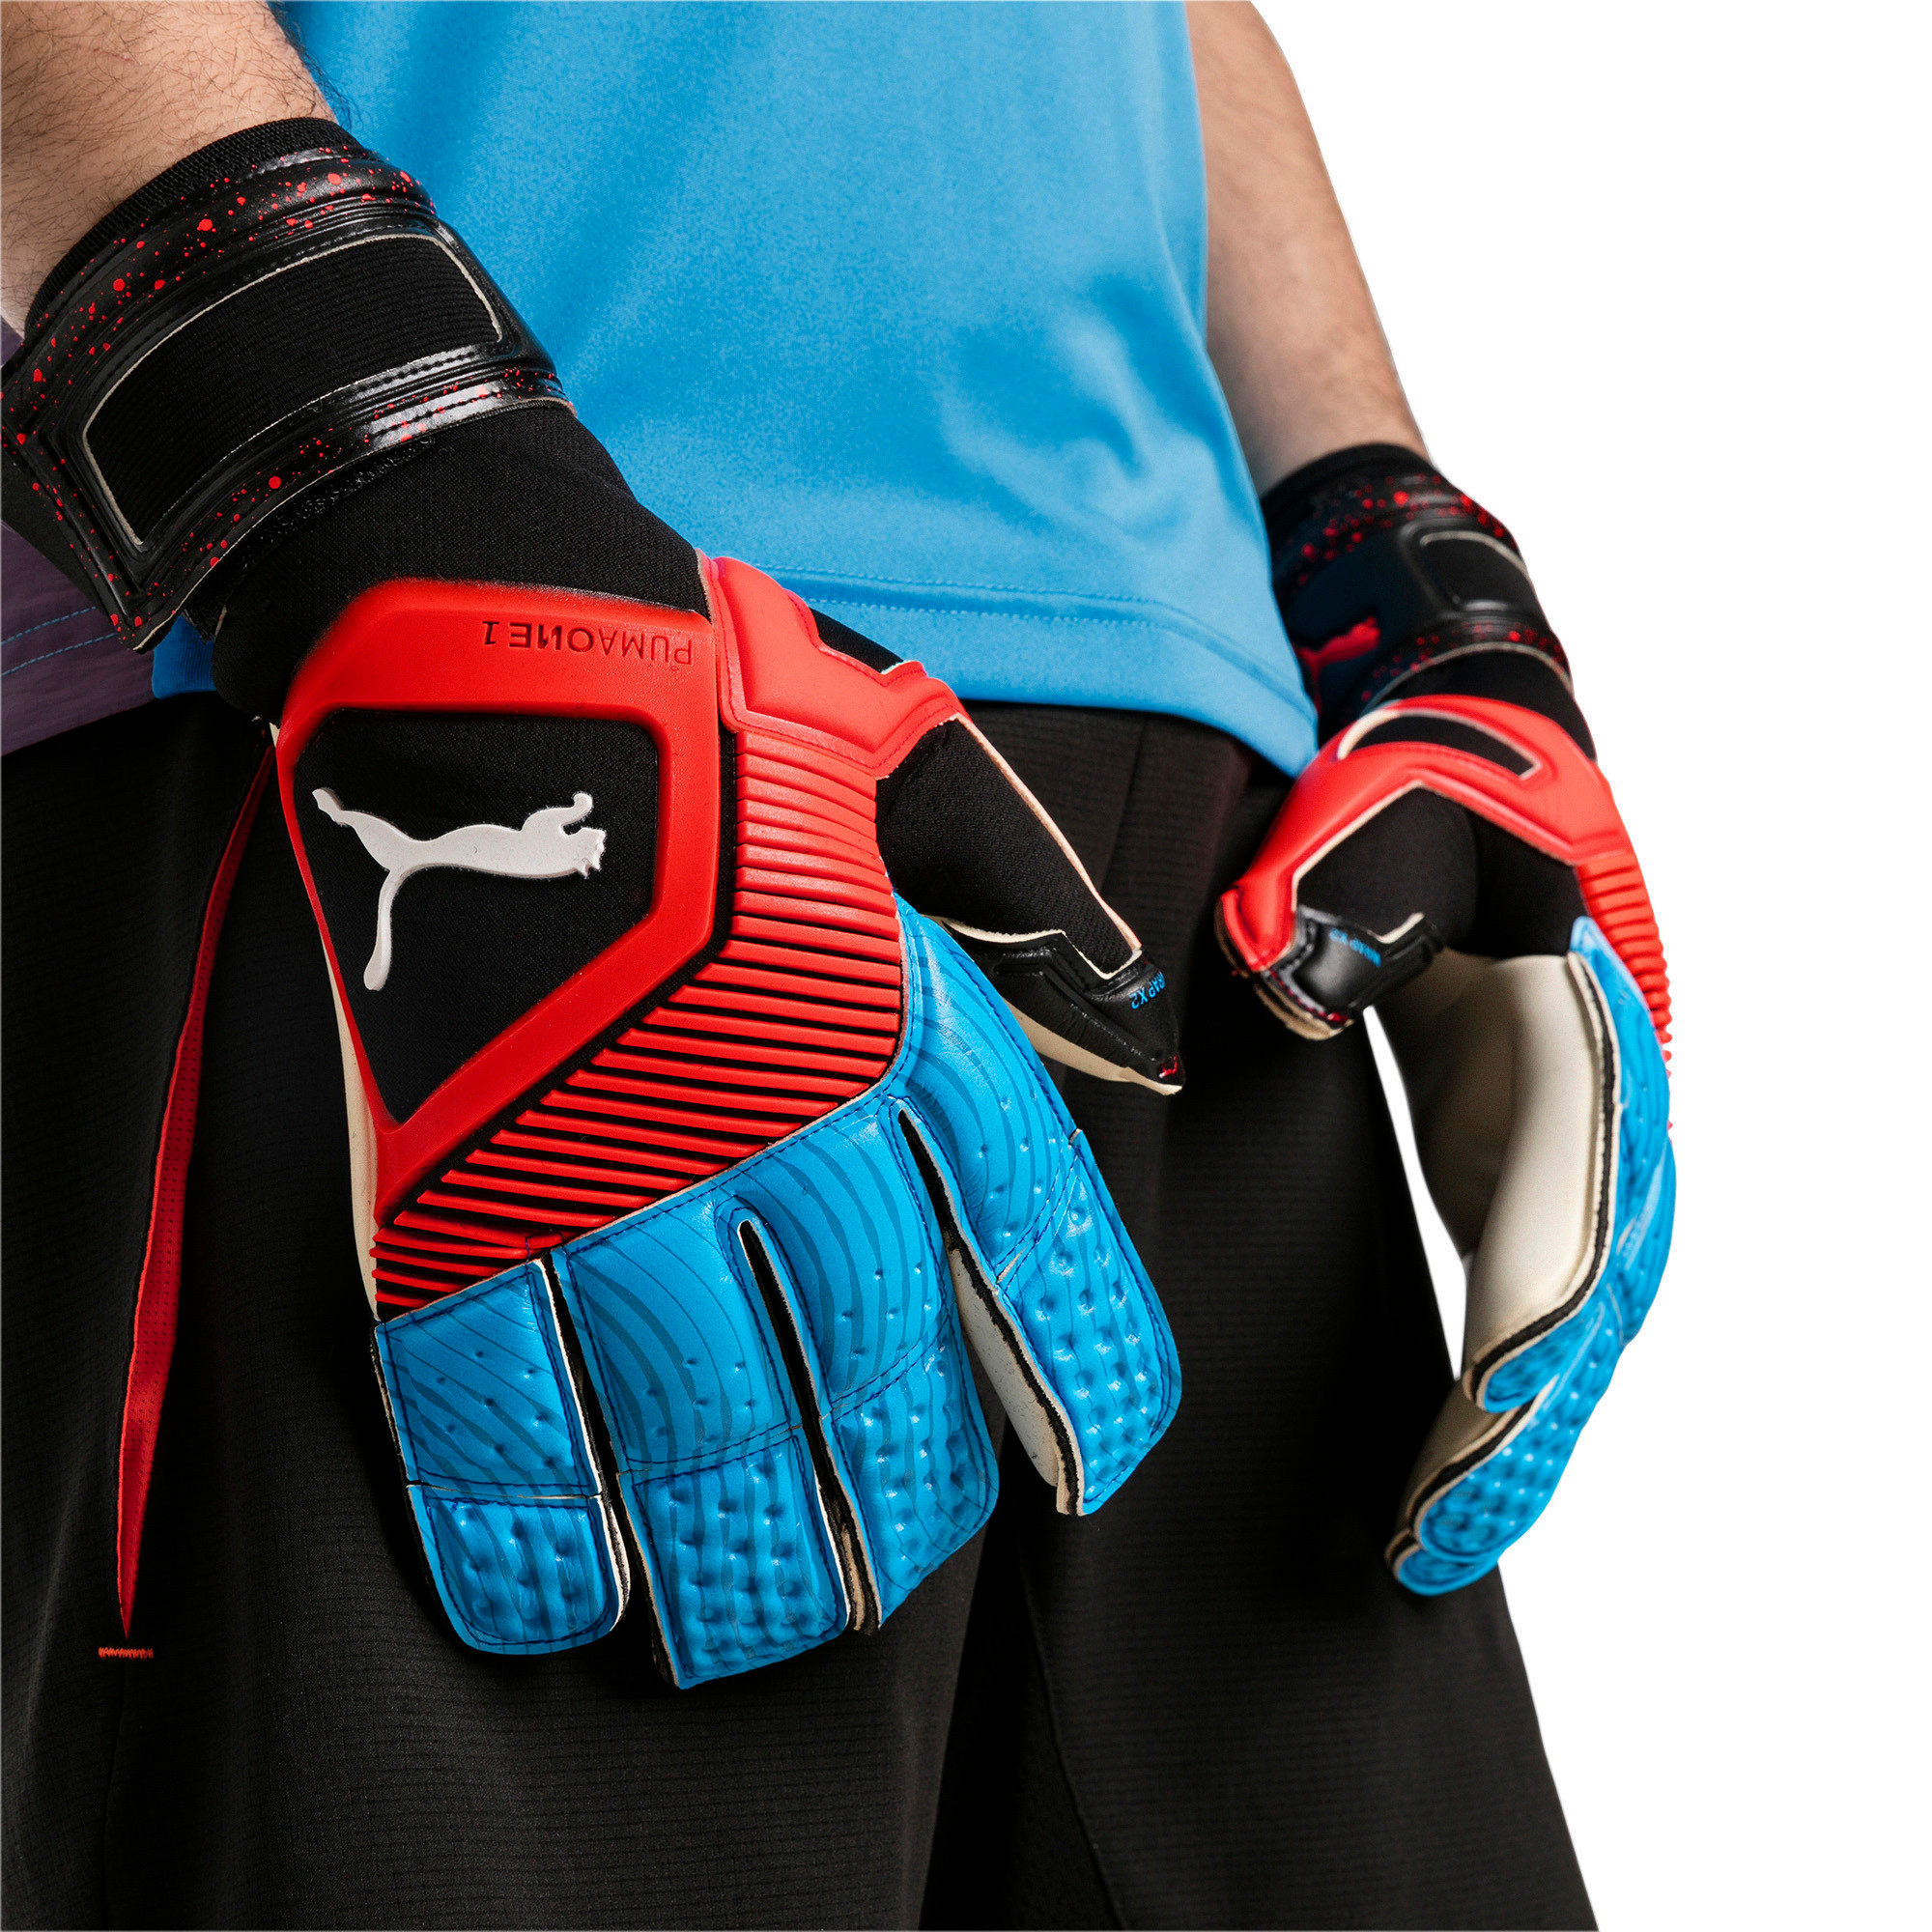 Thumbnail 2 of PUMA ONE Grip 1 Hybrid Pro Fußball Torwarthandschuhe, Black-Bleu Azur-Red Blast, medium